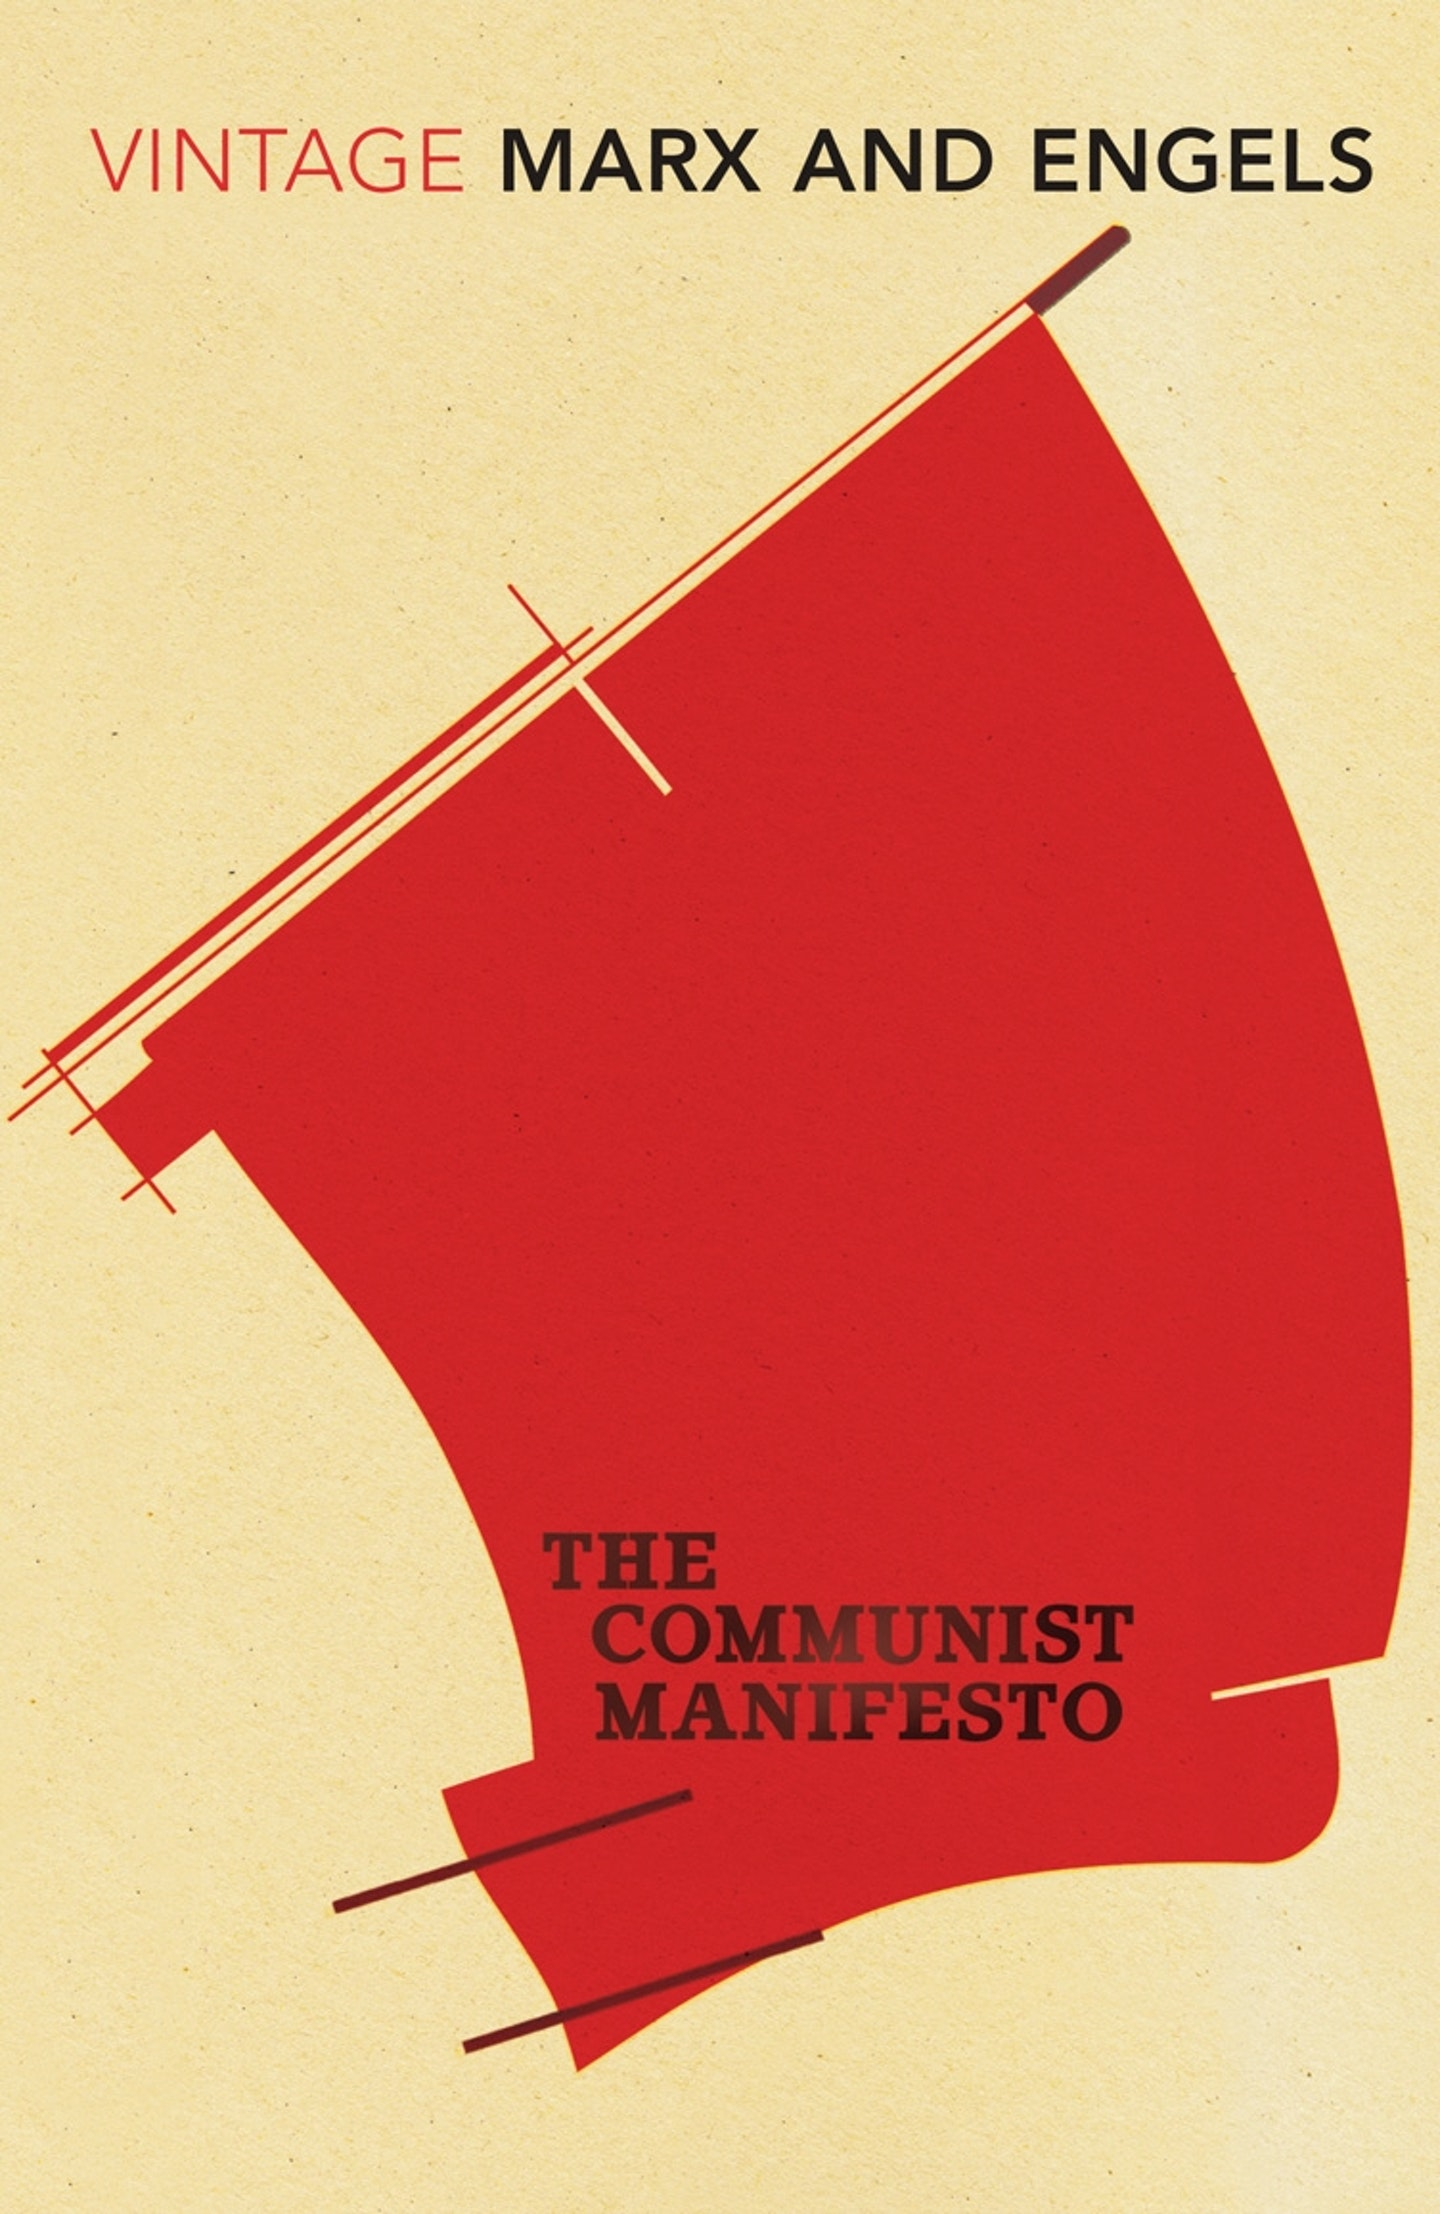 thesis of the communist manifesto Read this american history essay and over 88,000 other research documents karl marx and the communist manifesto karl marx and the communist manifesto karl marx was.